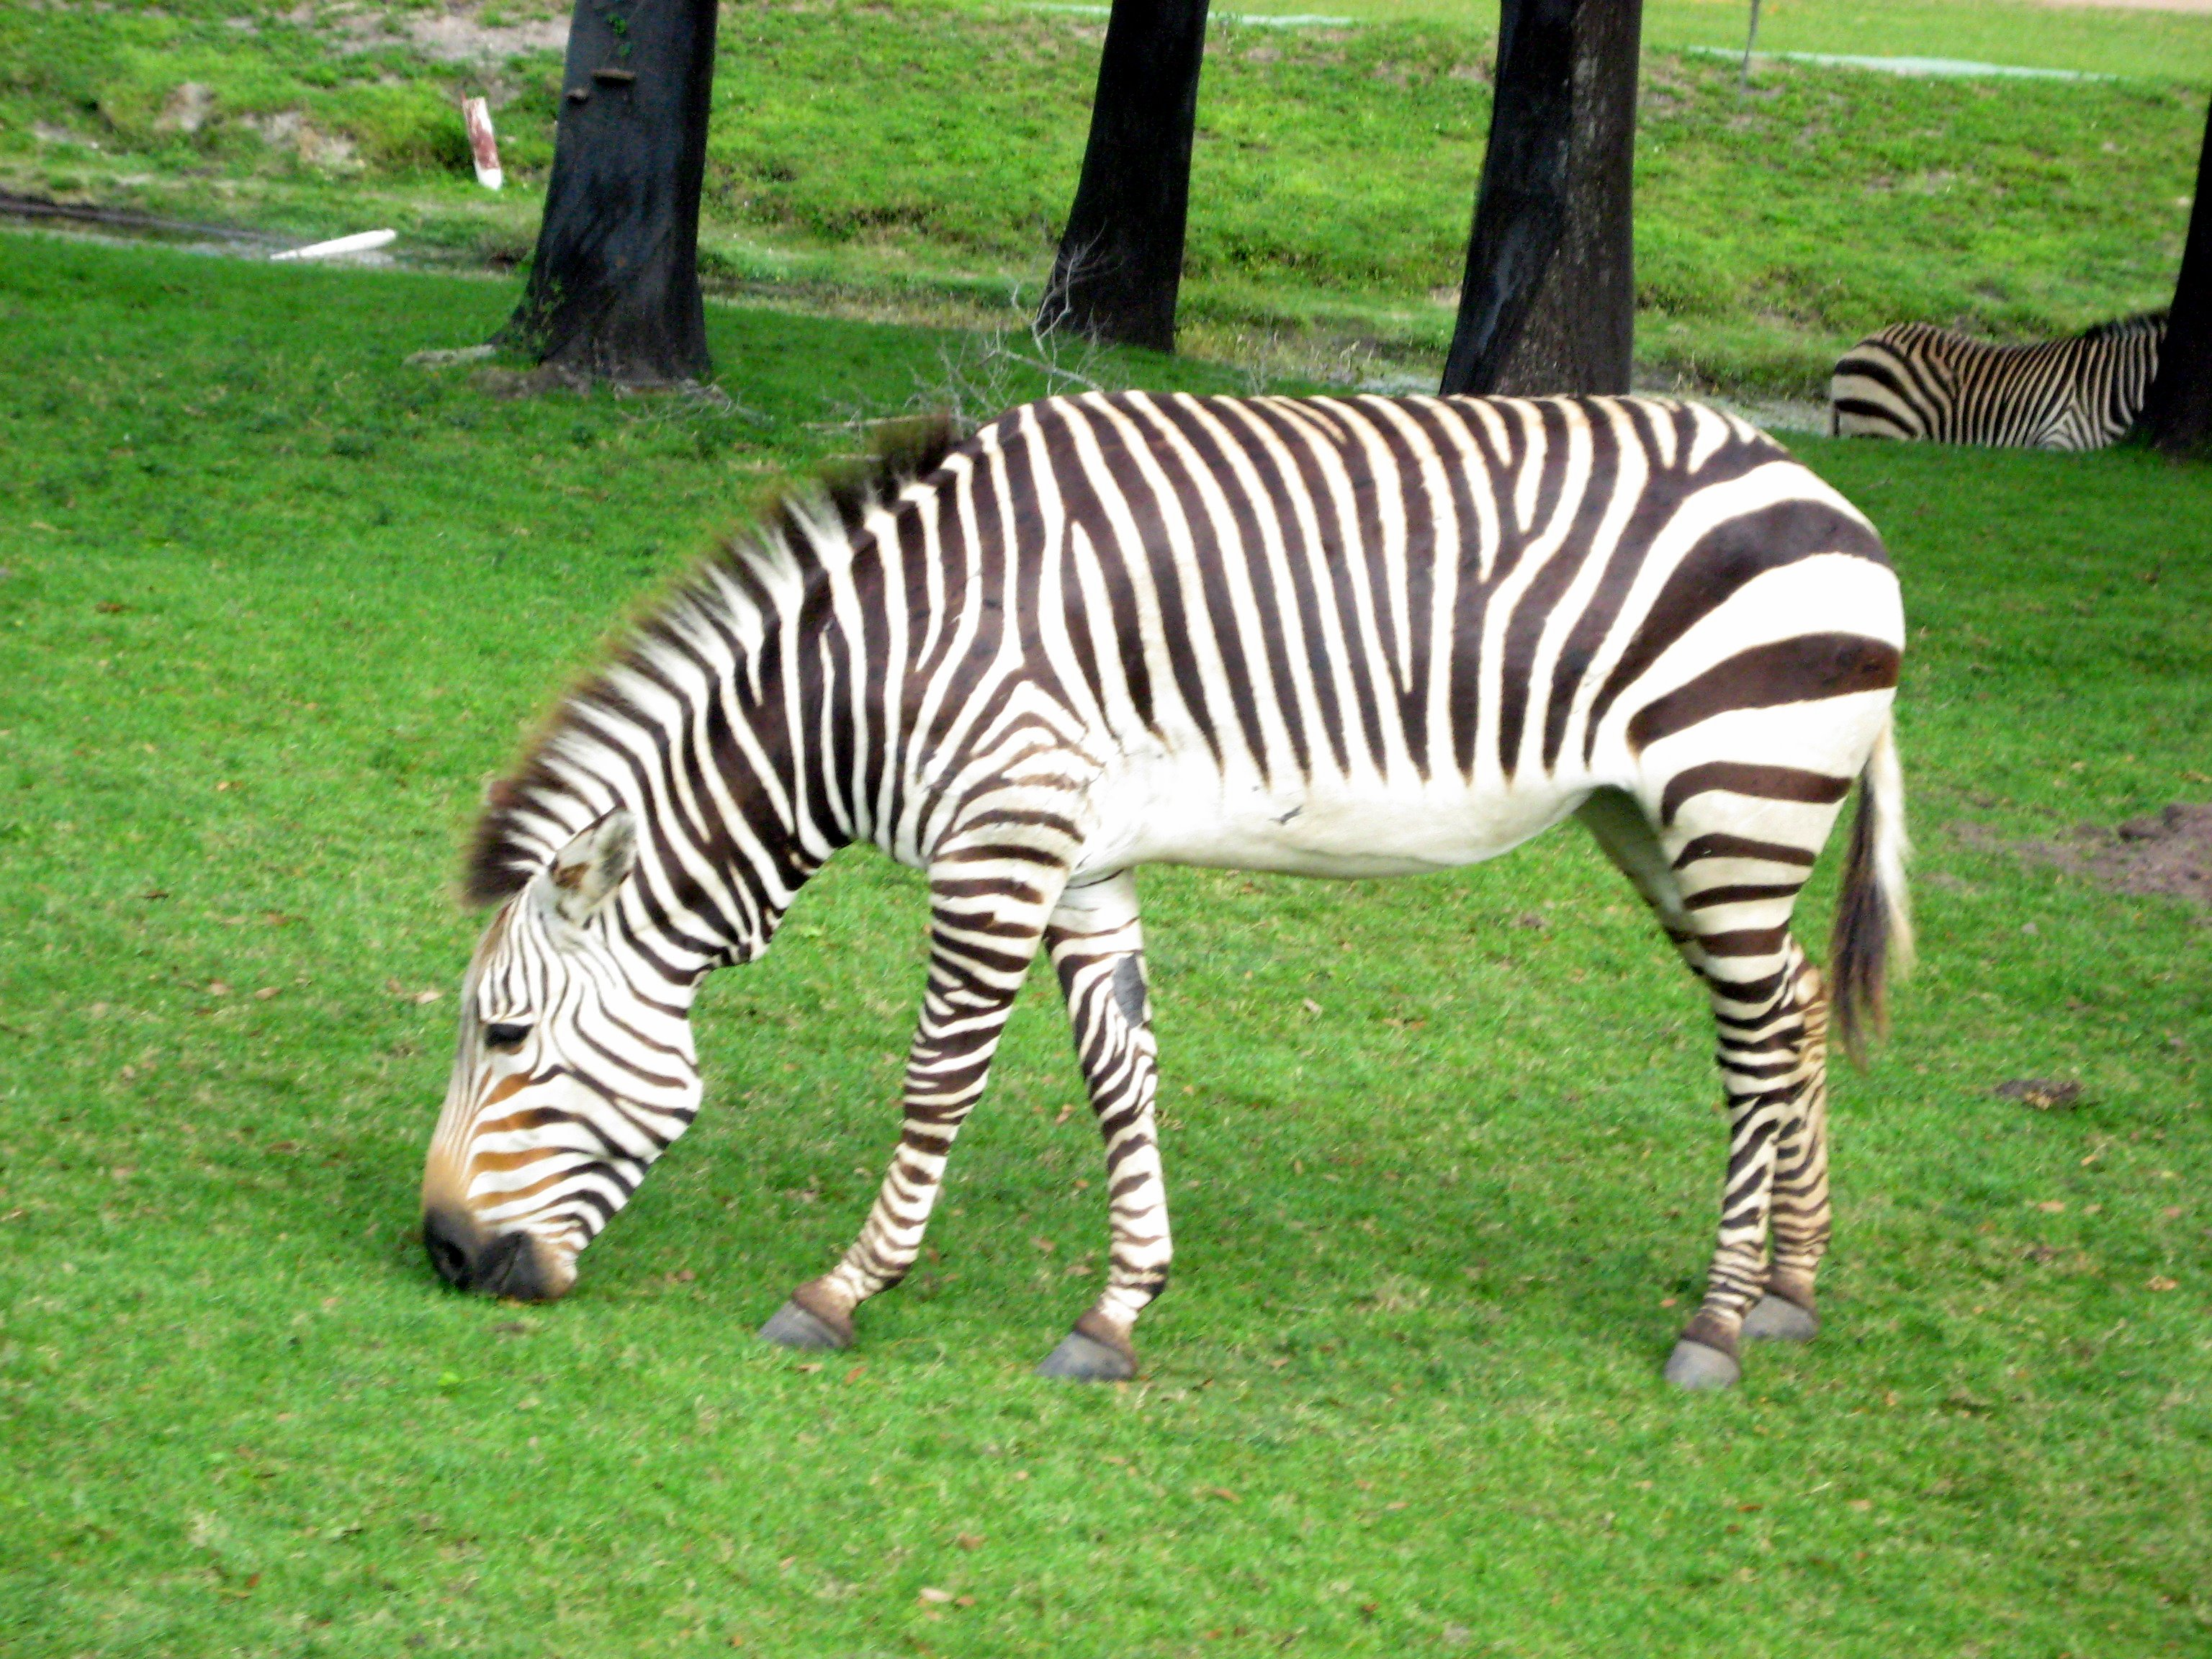 Zebra Eating Grass.